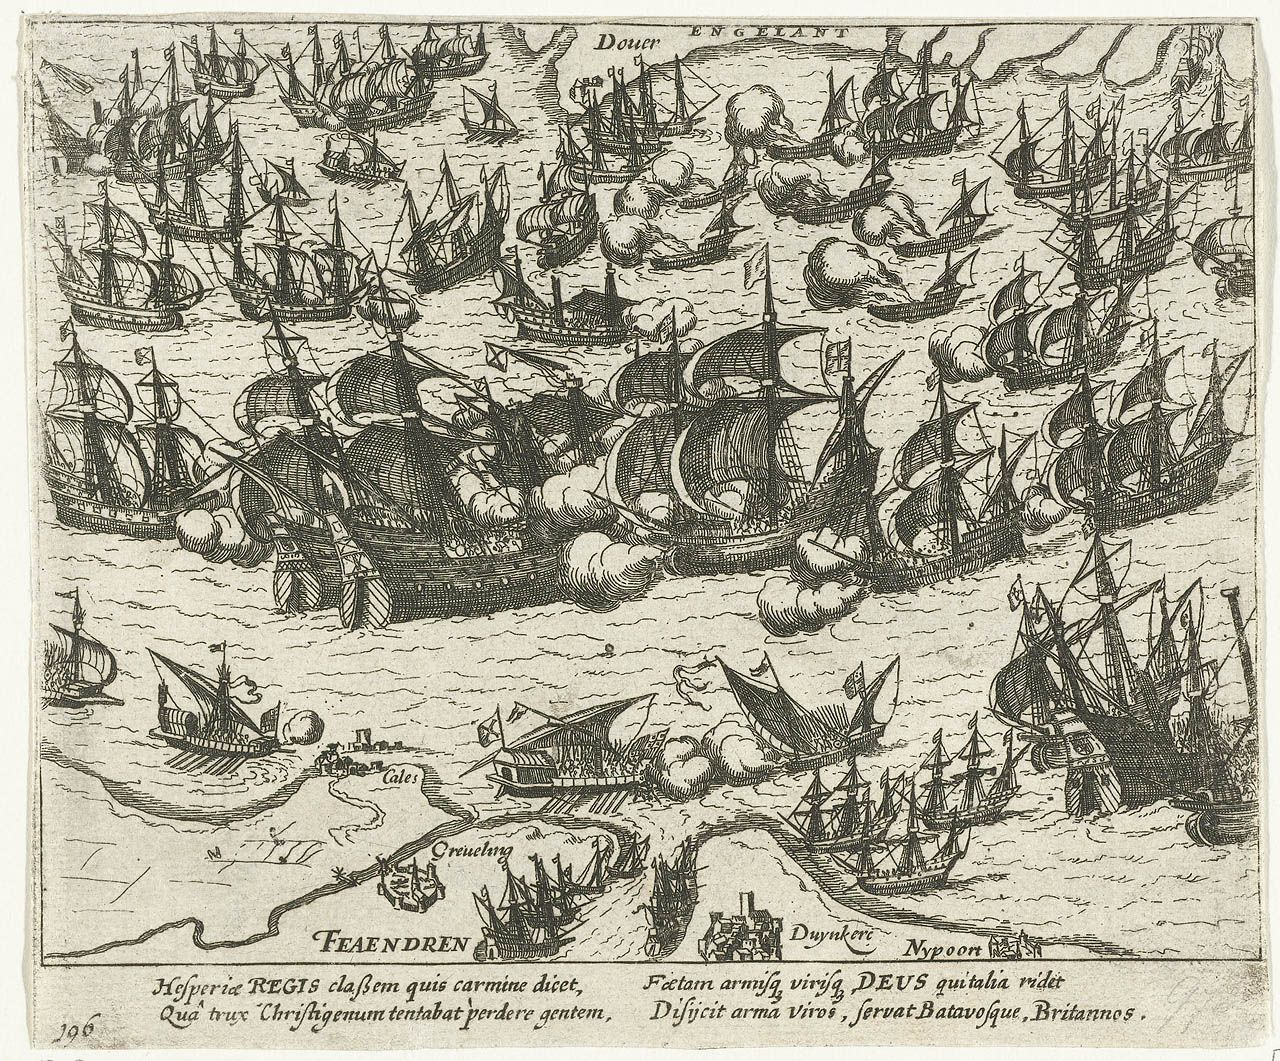 This Day in History: Jul 29, 1588: Spanish Armada defeated